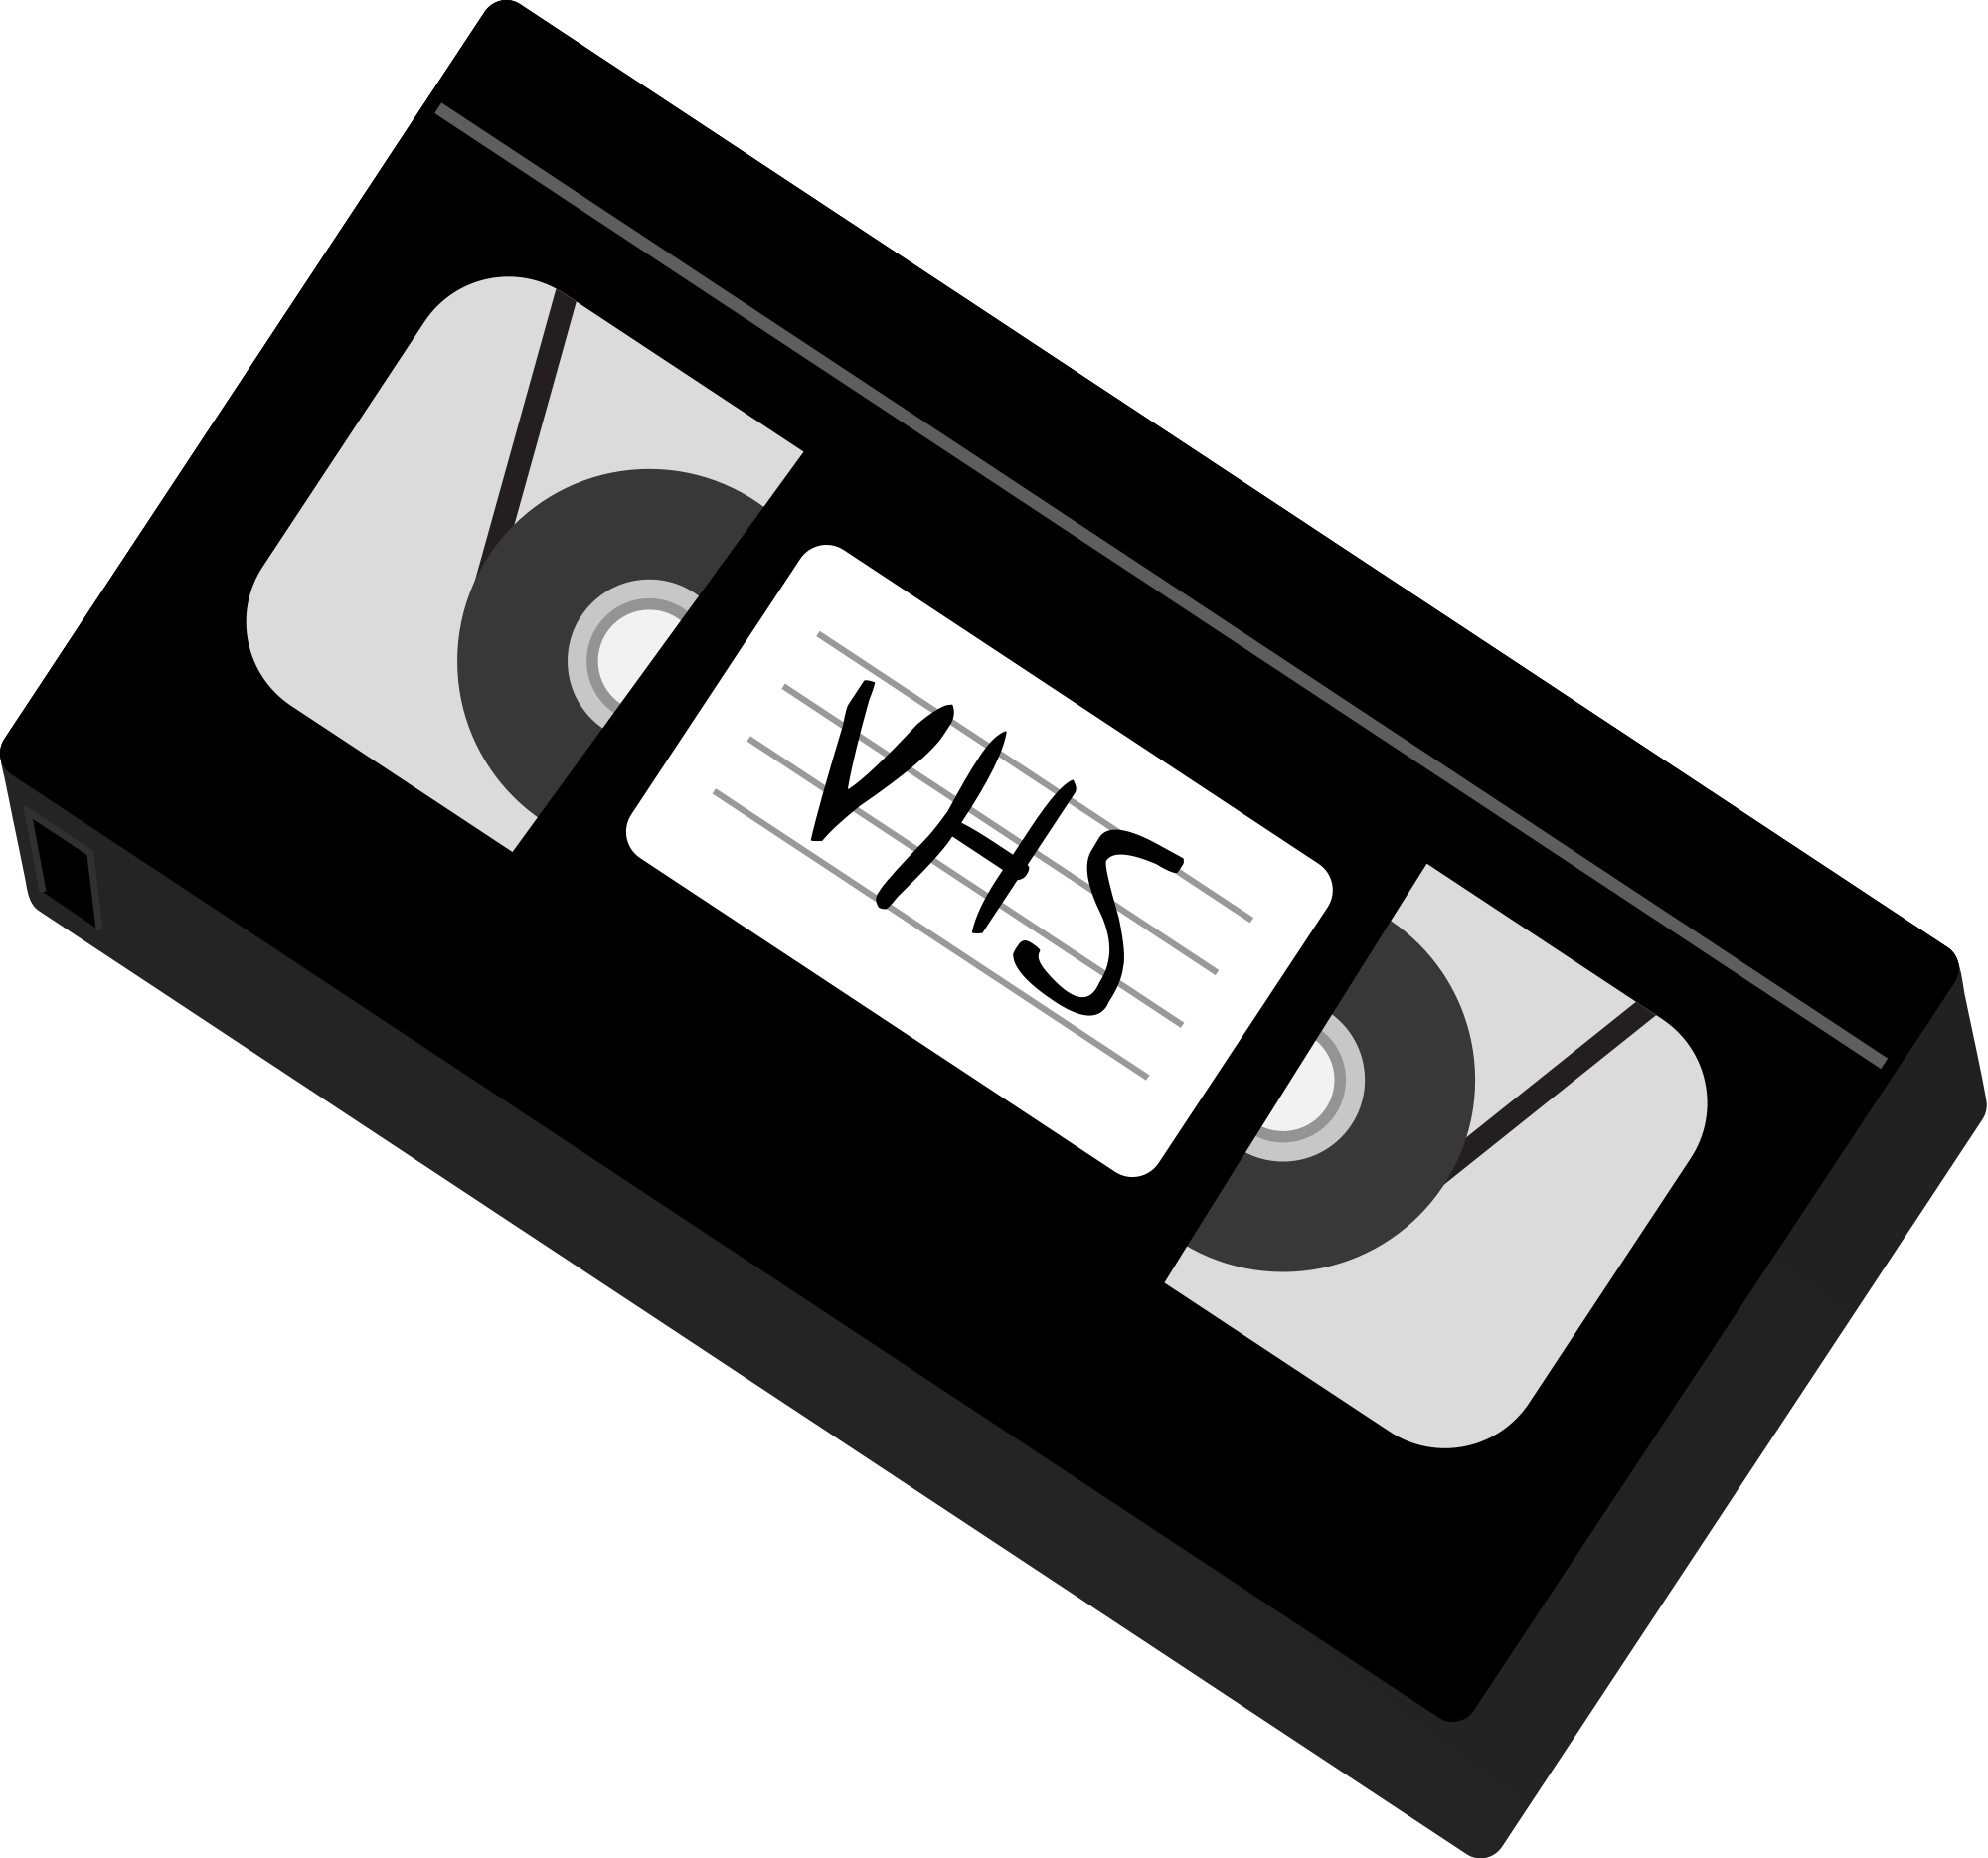 Vhs, Tape, Movie, Vcr, Film,